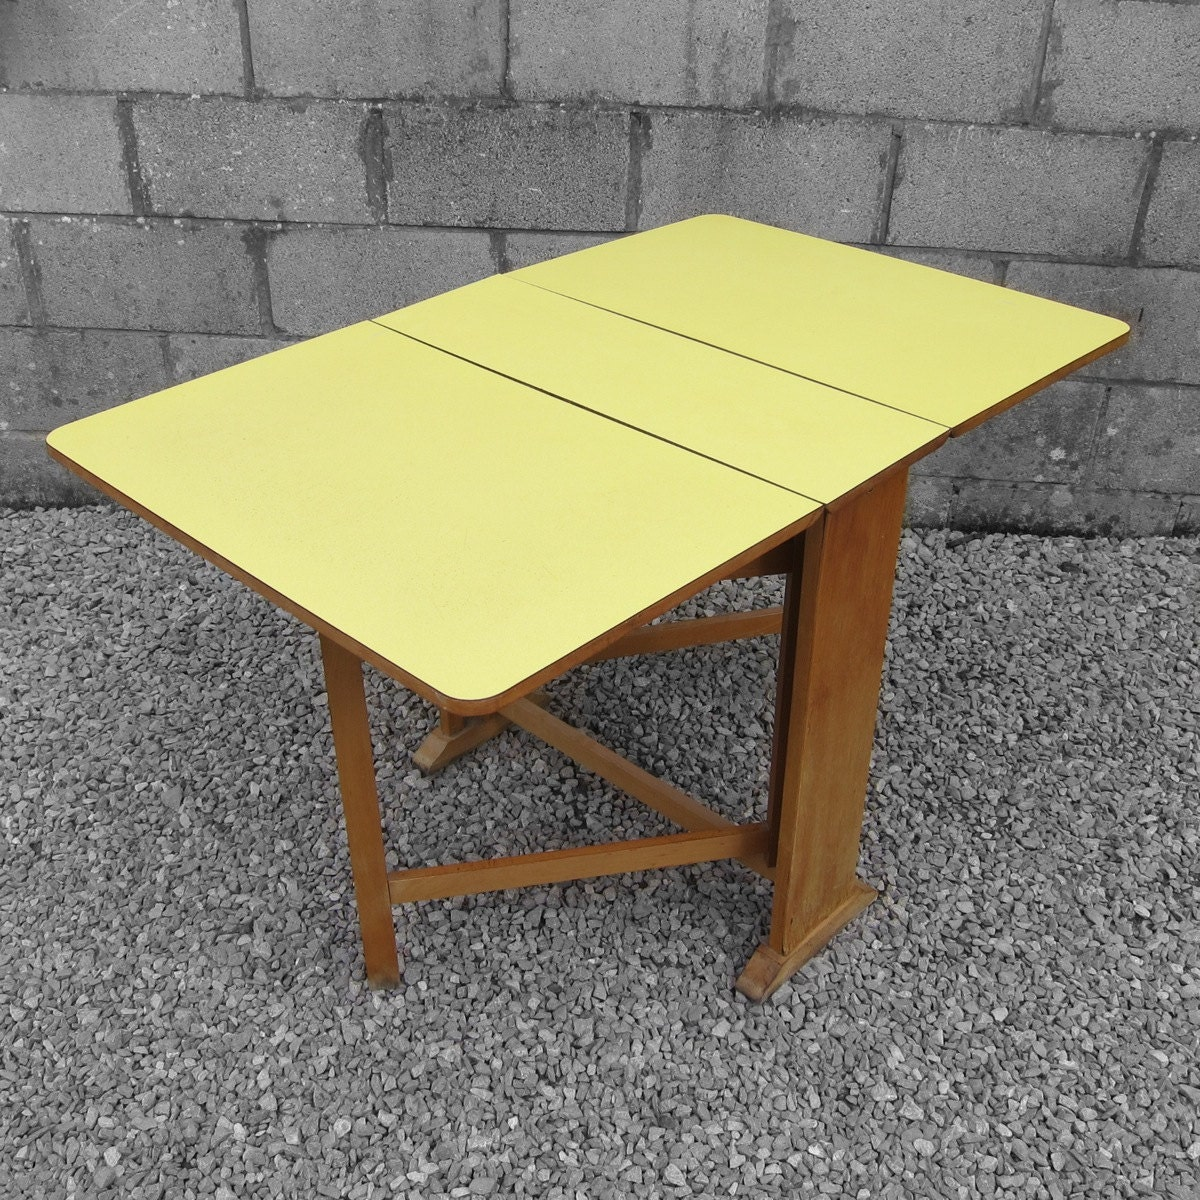 1950s Vintage Kitsch Old Retro Yellow Formica Kitchen  : ilfullxfull743370261mopy from hautejuice.wordpress.com size 1200 x 1200 jpeg 452kB